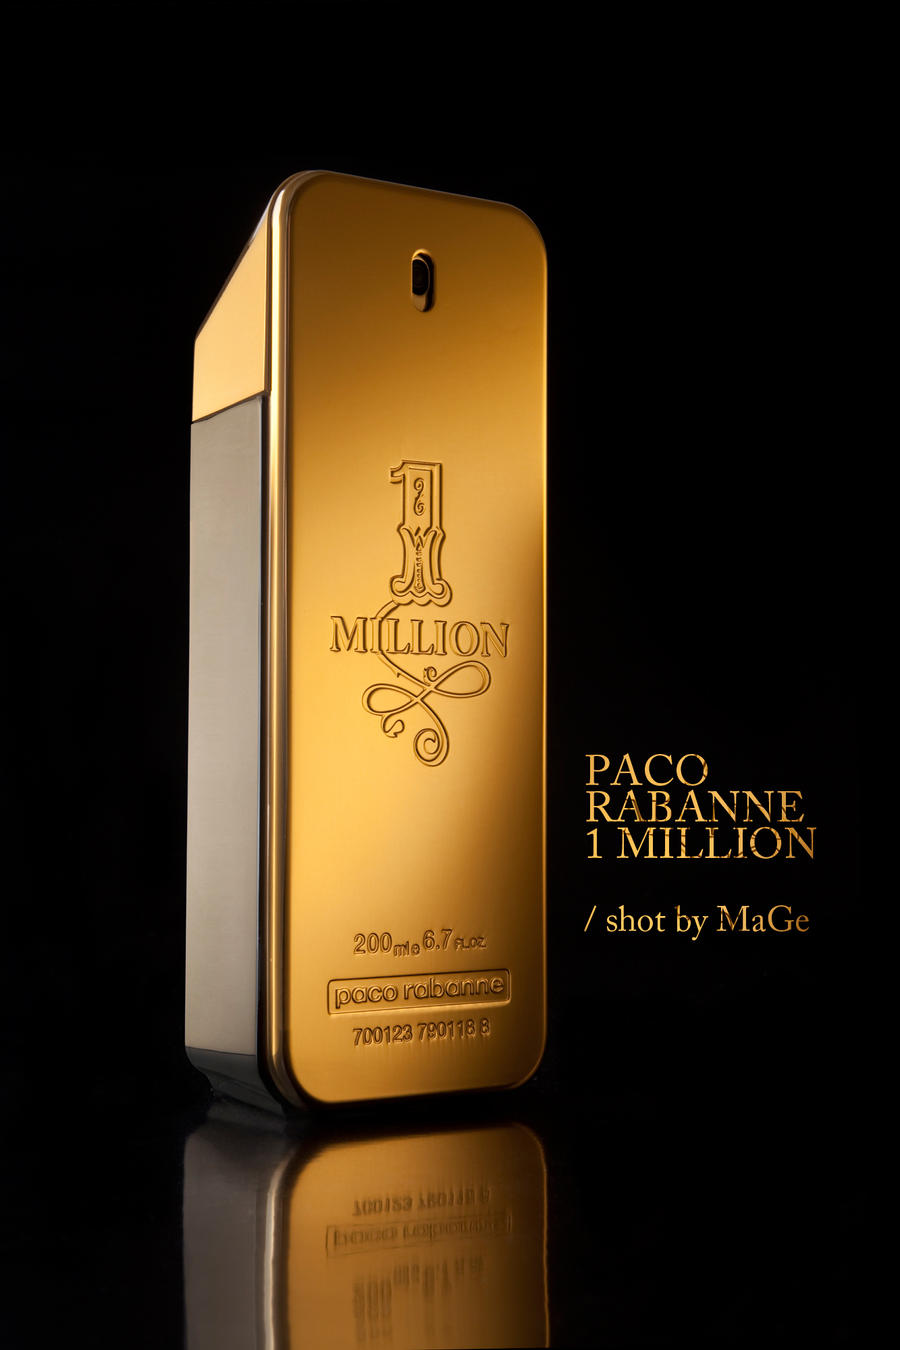 Paco rabanne 1m packshot by aucoeurdemage on deviantart for Paco by paco rabanne